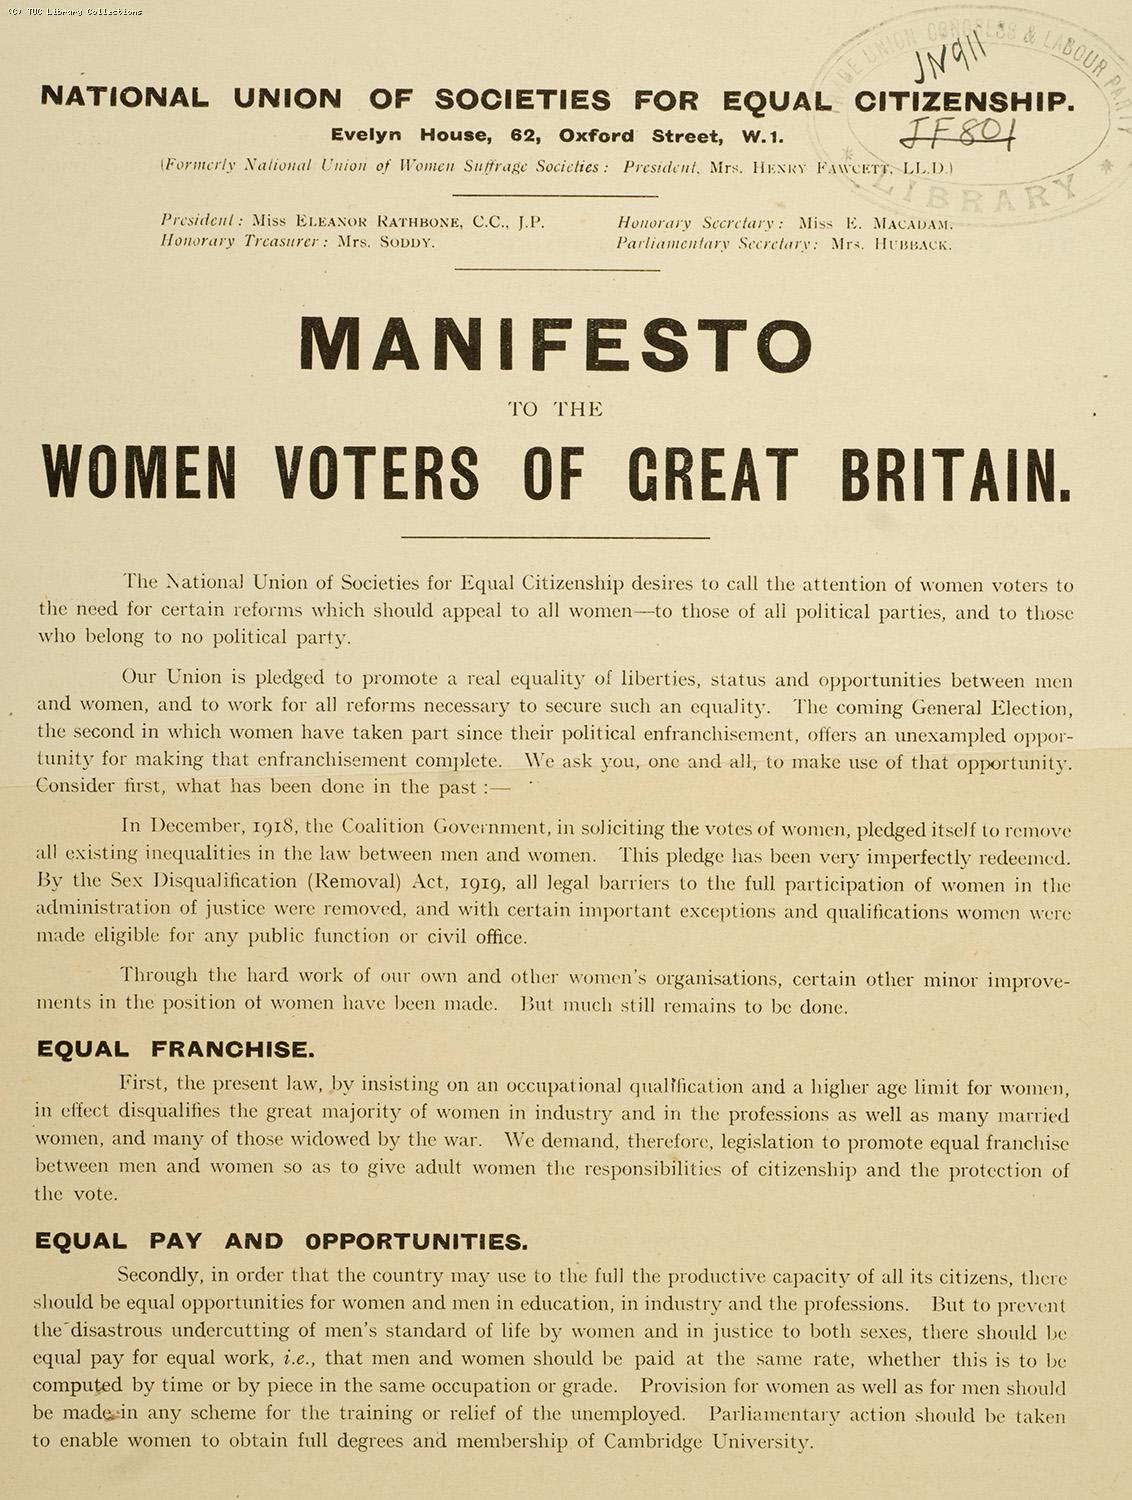 Manifesto to the women voters of Great Britain